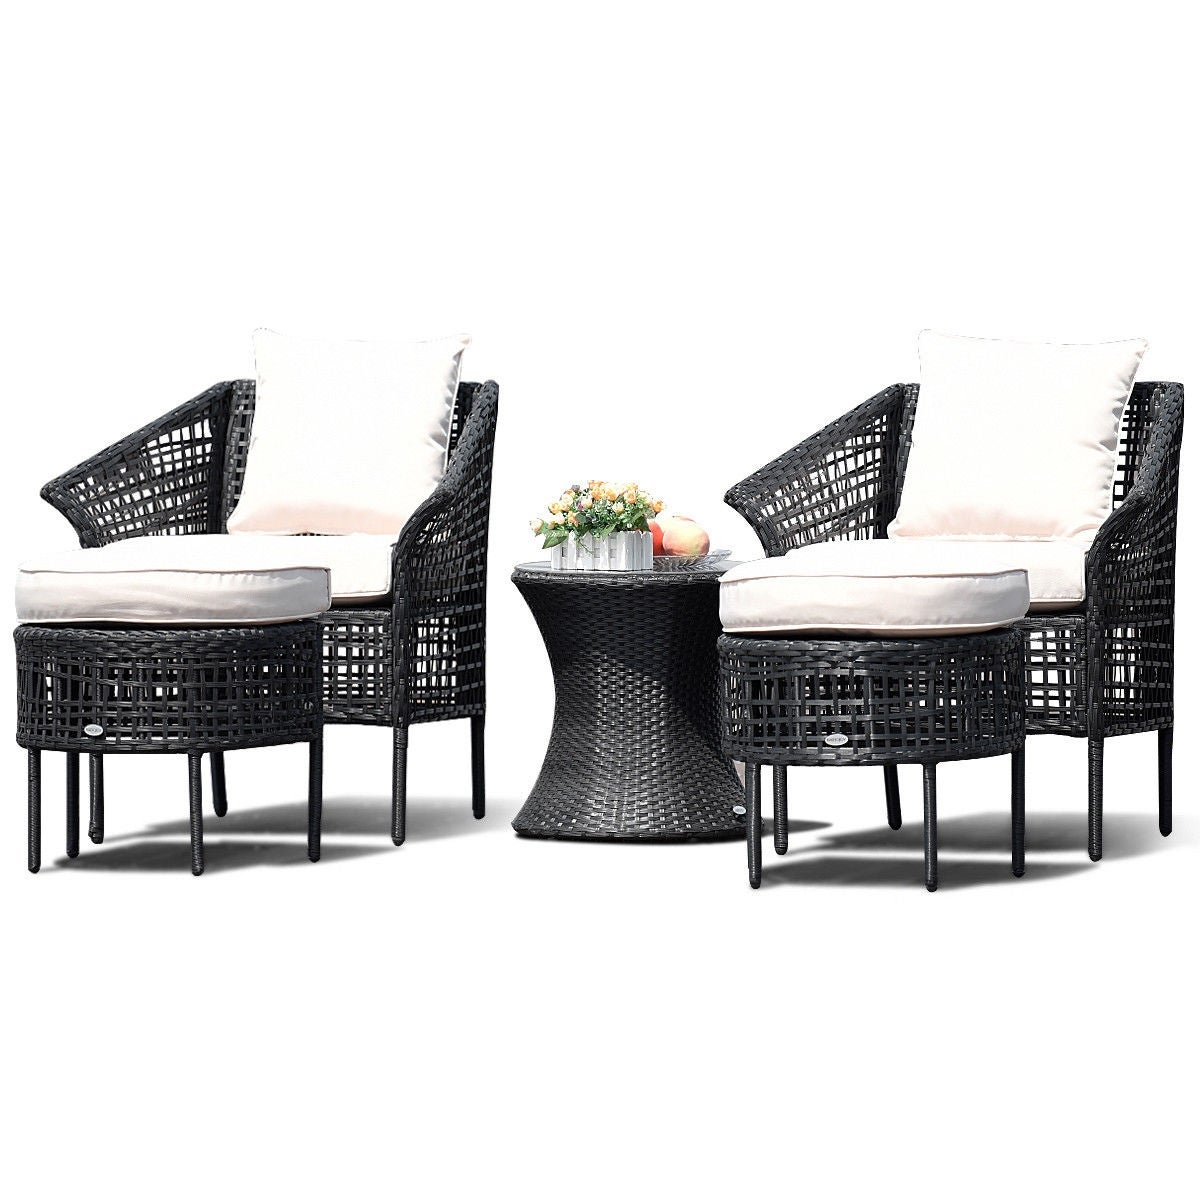 Shop Costway 5 PCS Patio Furniture Dining Sets Leisure Set Rattan Seats Table  Ottoman Beige - as pic - Free Shipping Today - Overstock.com - 22349494 - Shop Costway 5 PCS Patio Furniture Dining Sets Leisure Set Rattan